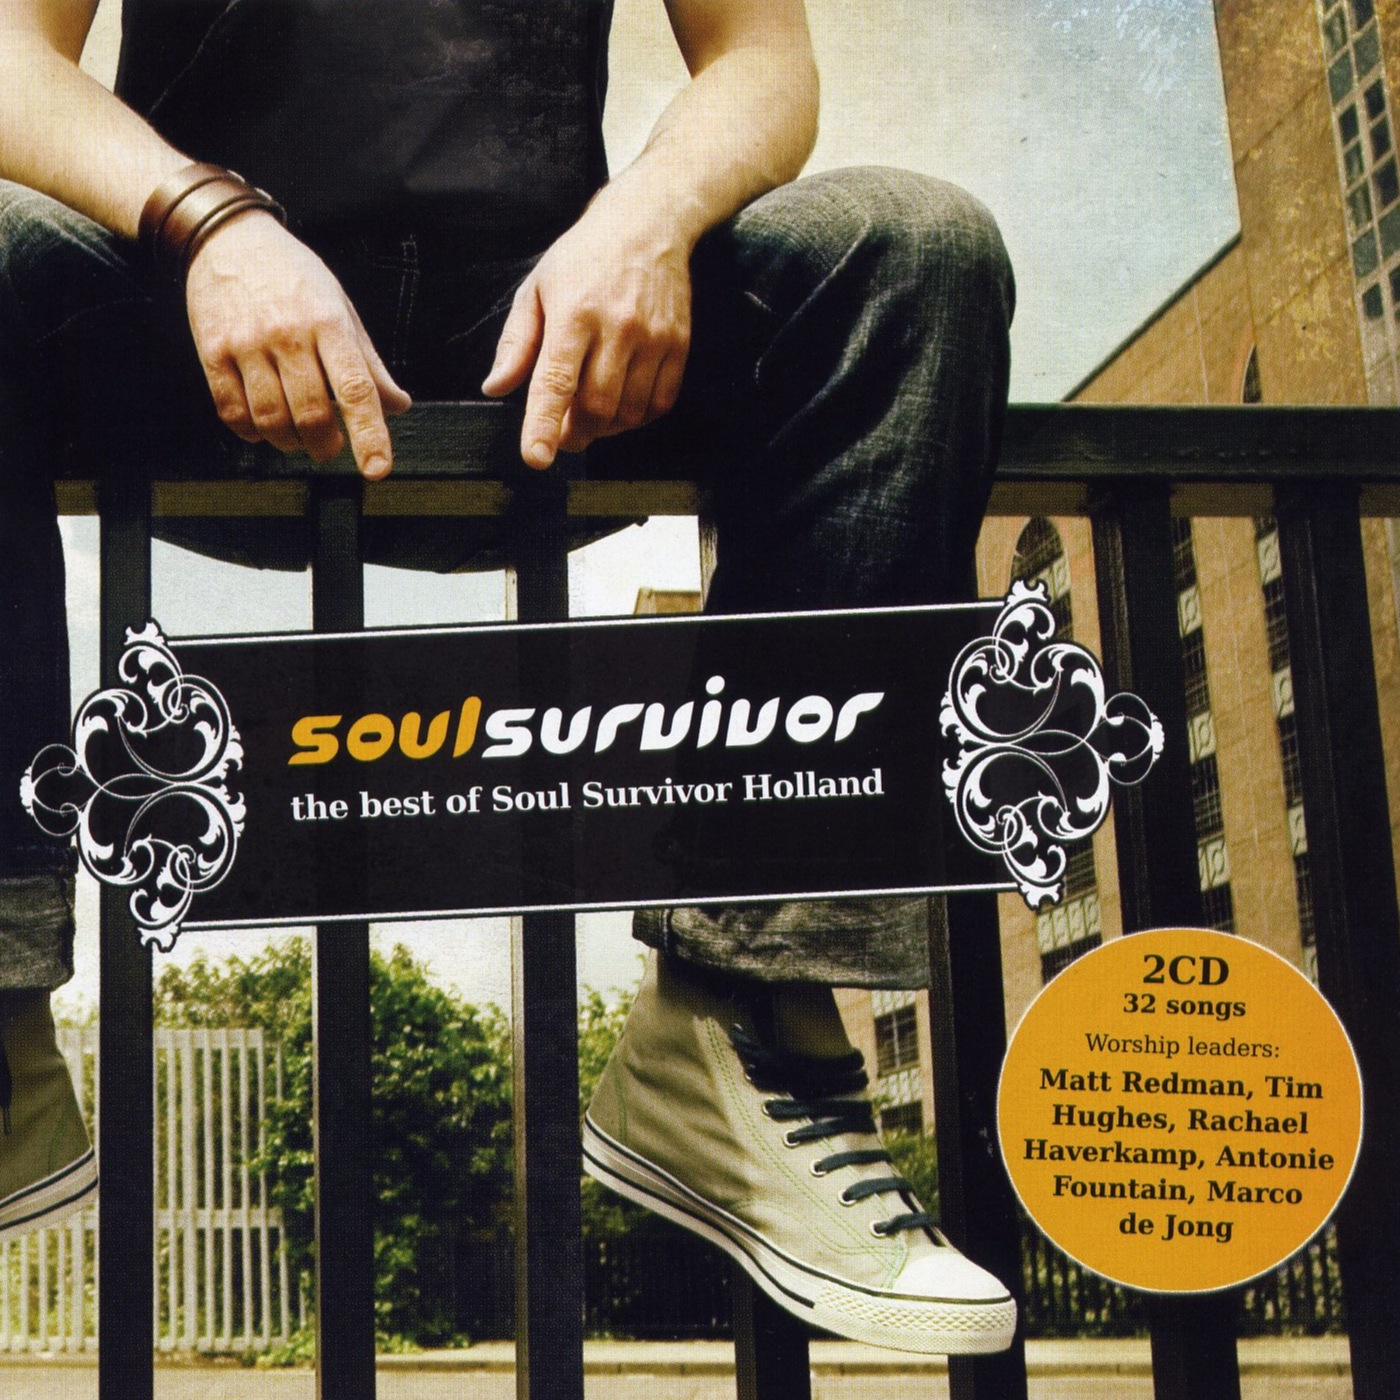 Soulsurvivor - The best of Soulsurvivor Holland